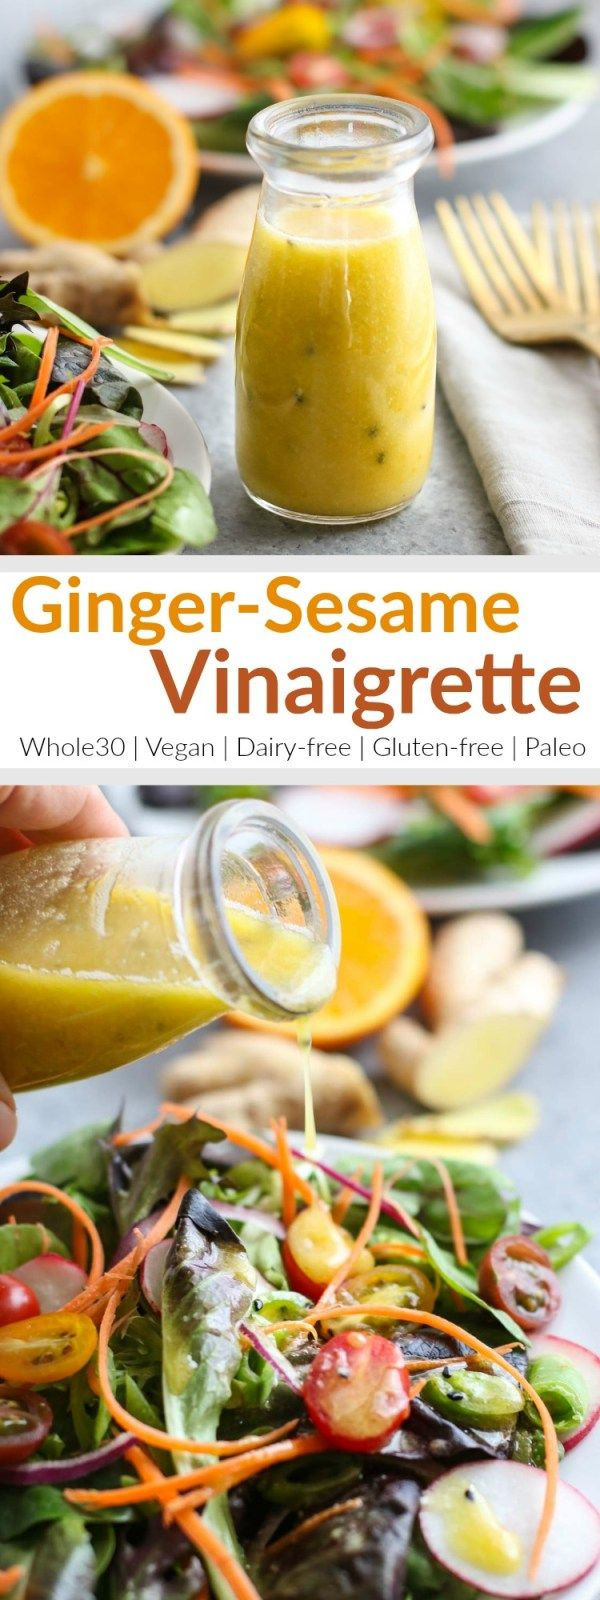 Uplevel your next salad with this Ginger-Sesame Vinaigrette! | Drizzled over salad greens or tossed with shredded Napa cabbage, this light and slightly sweet dressing gives everything it touches a sunny punch of flavor. | Whole30 | Paleo | Vegan | Dairy-free | Gluten-free | https://therealfoodrds.com/ginger-sesame-vinaigrette/